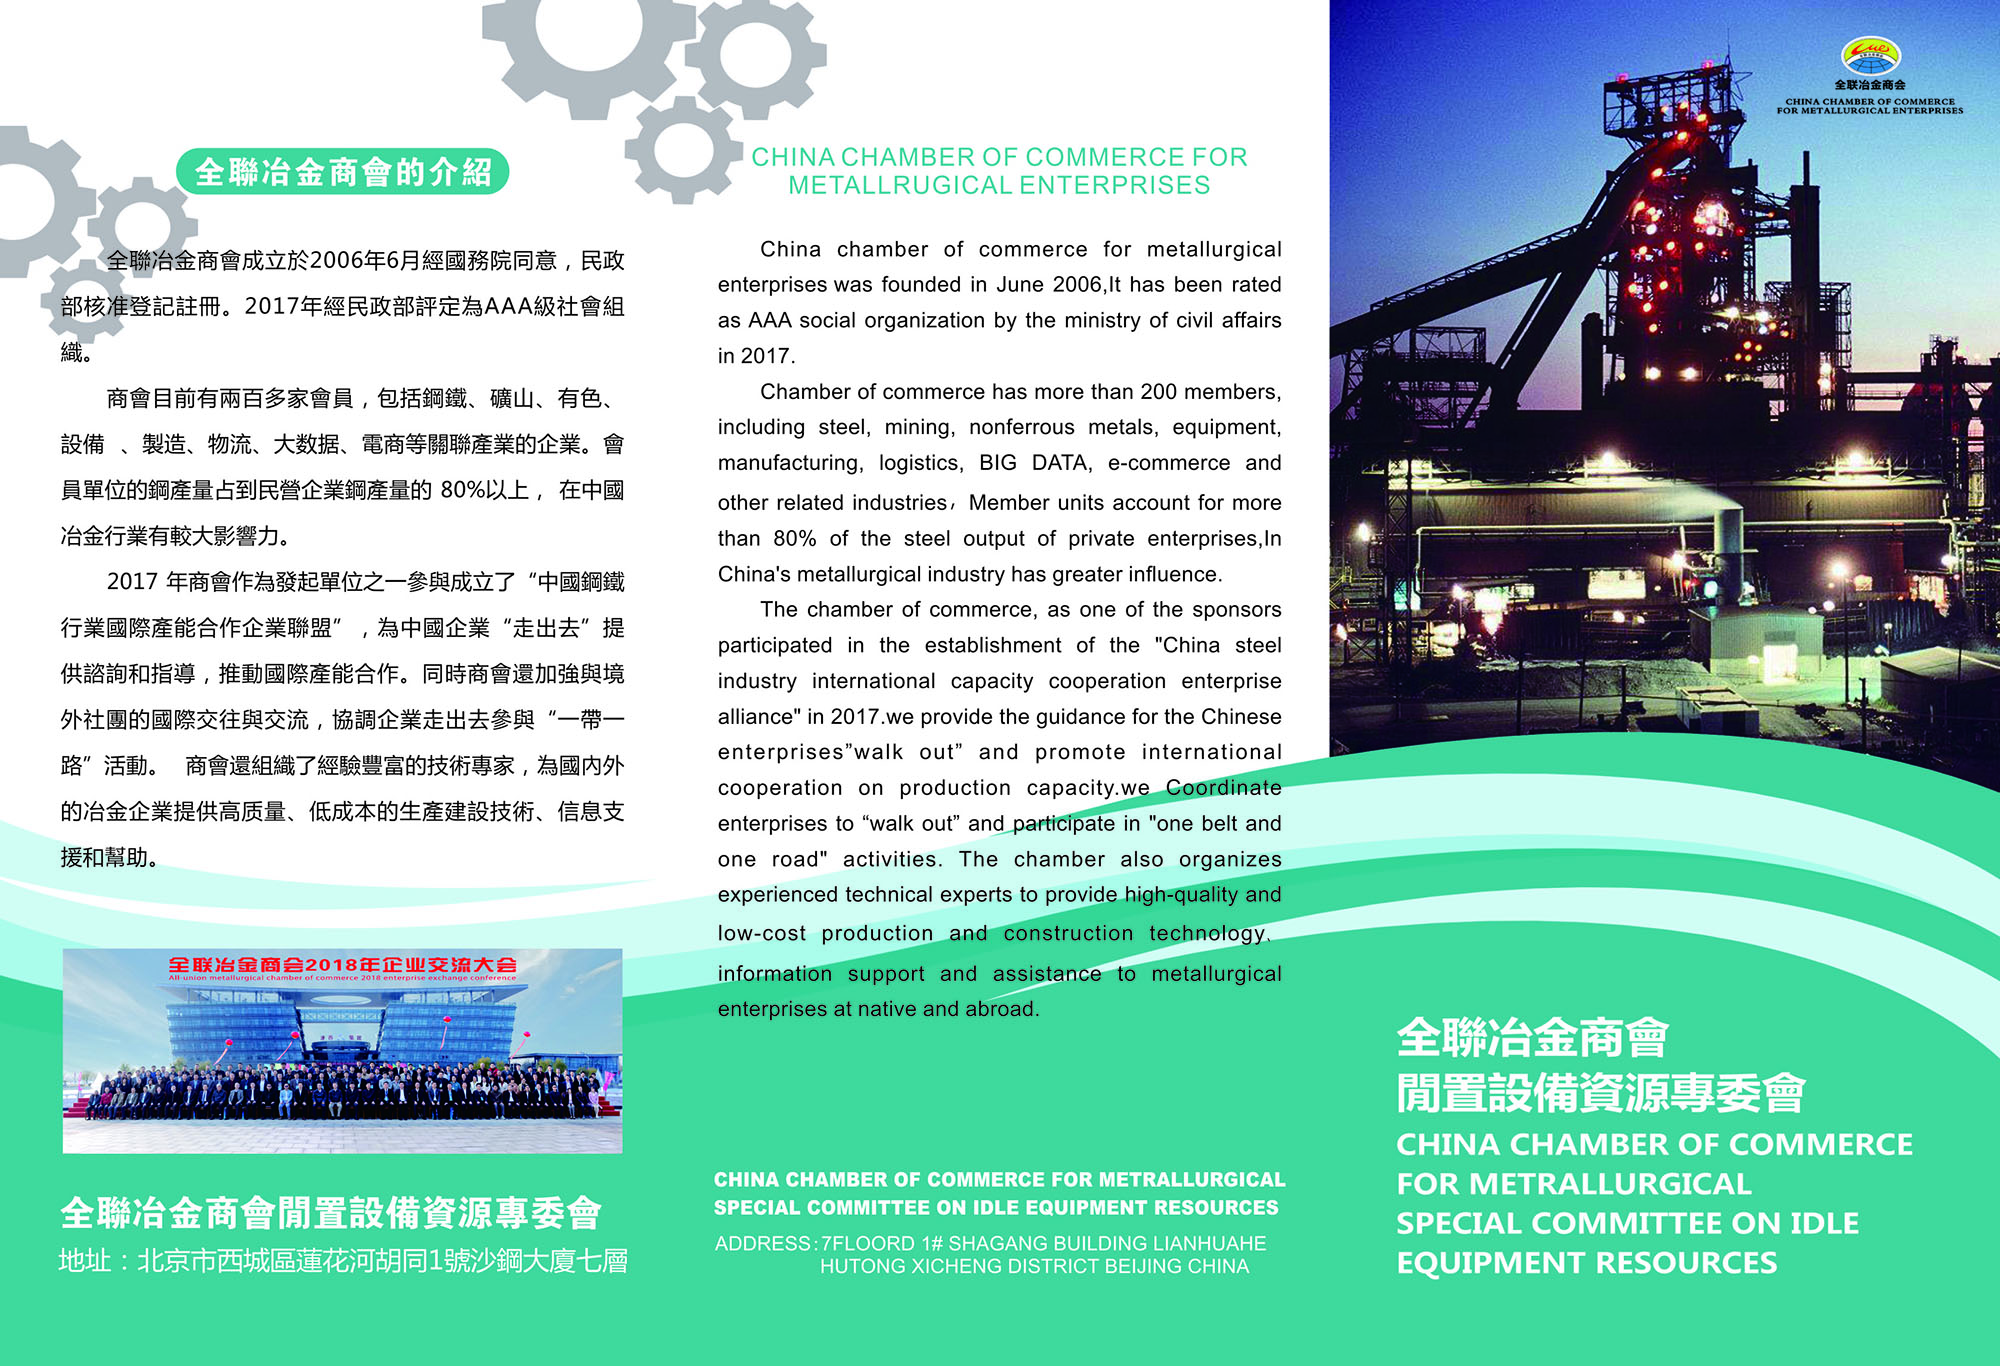 CHINA CHAMBER OF COMMERCE FOR METALLRUGICAL